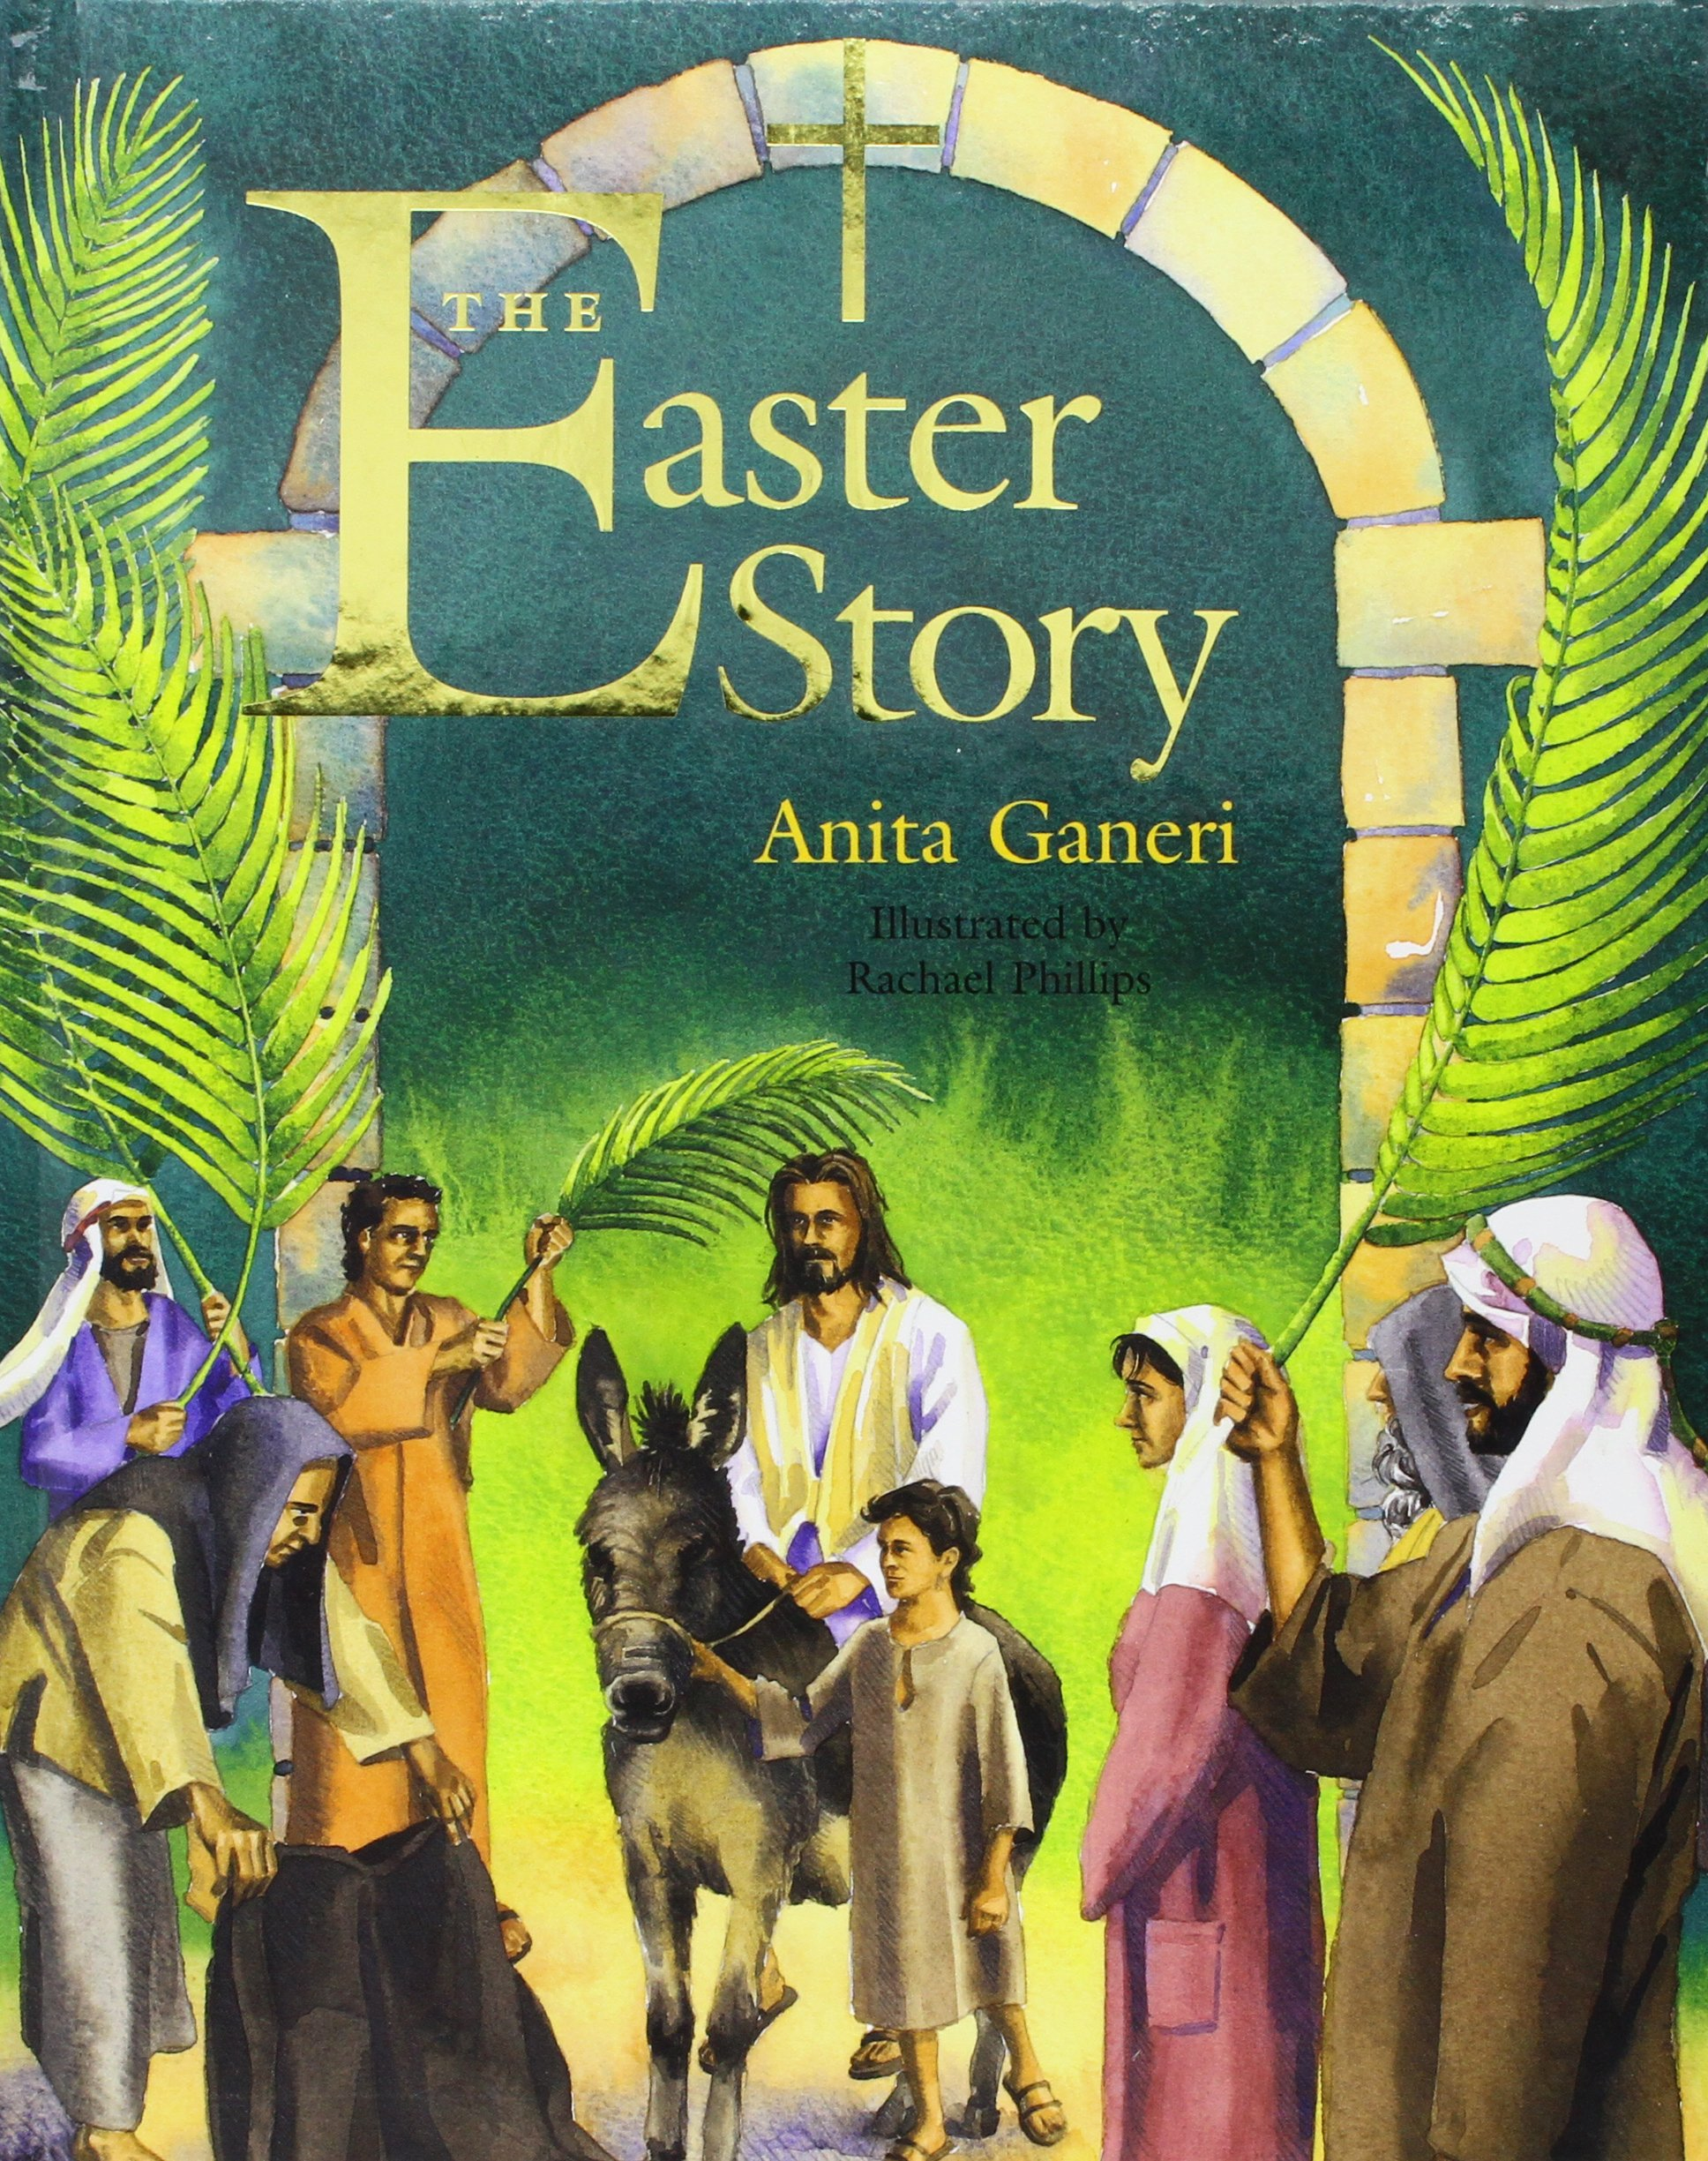 The Easter Story (Festival Stories) PDF